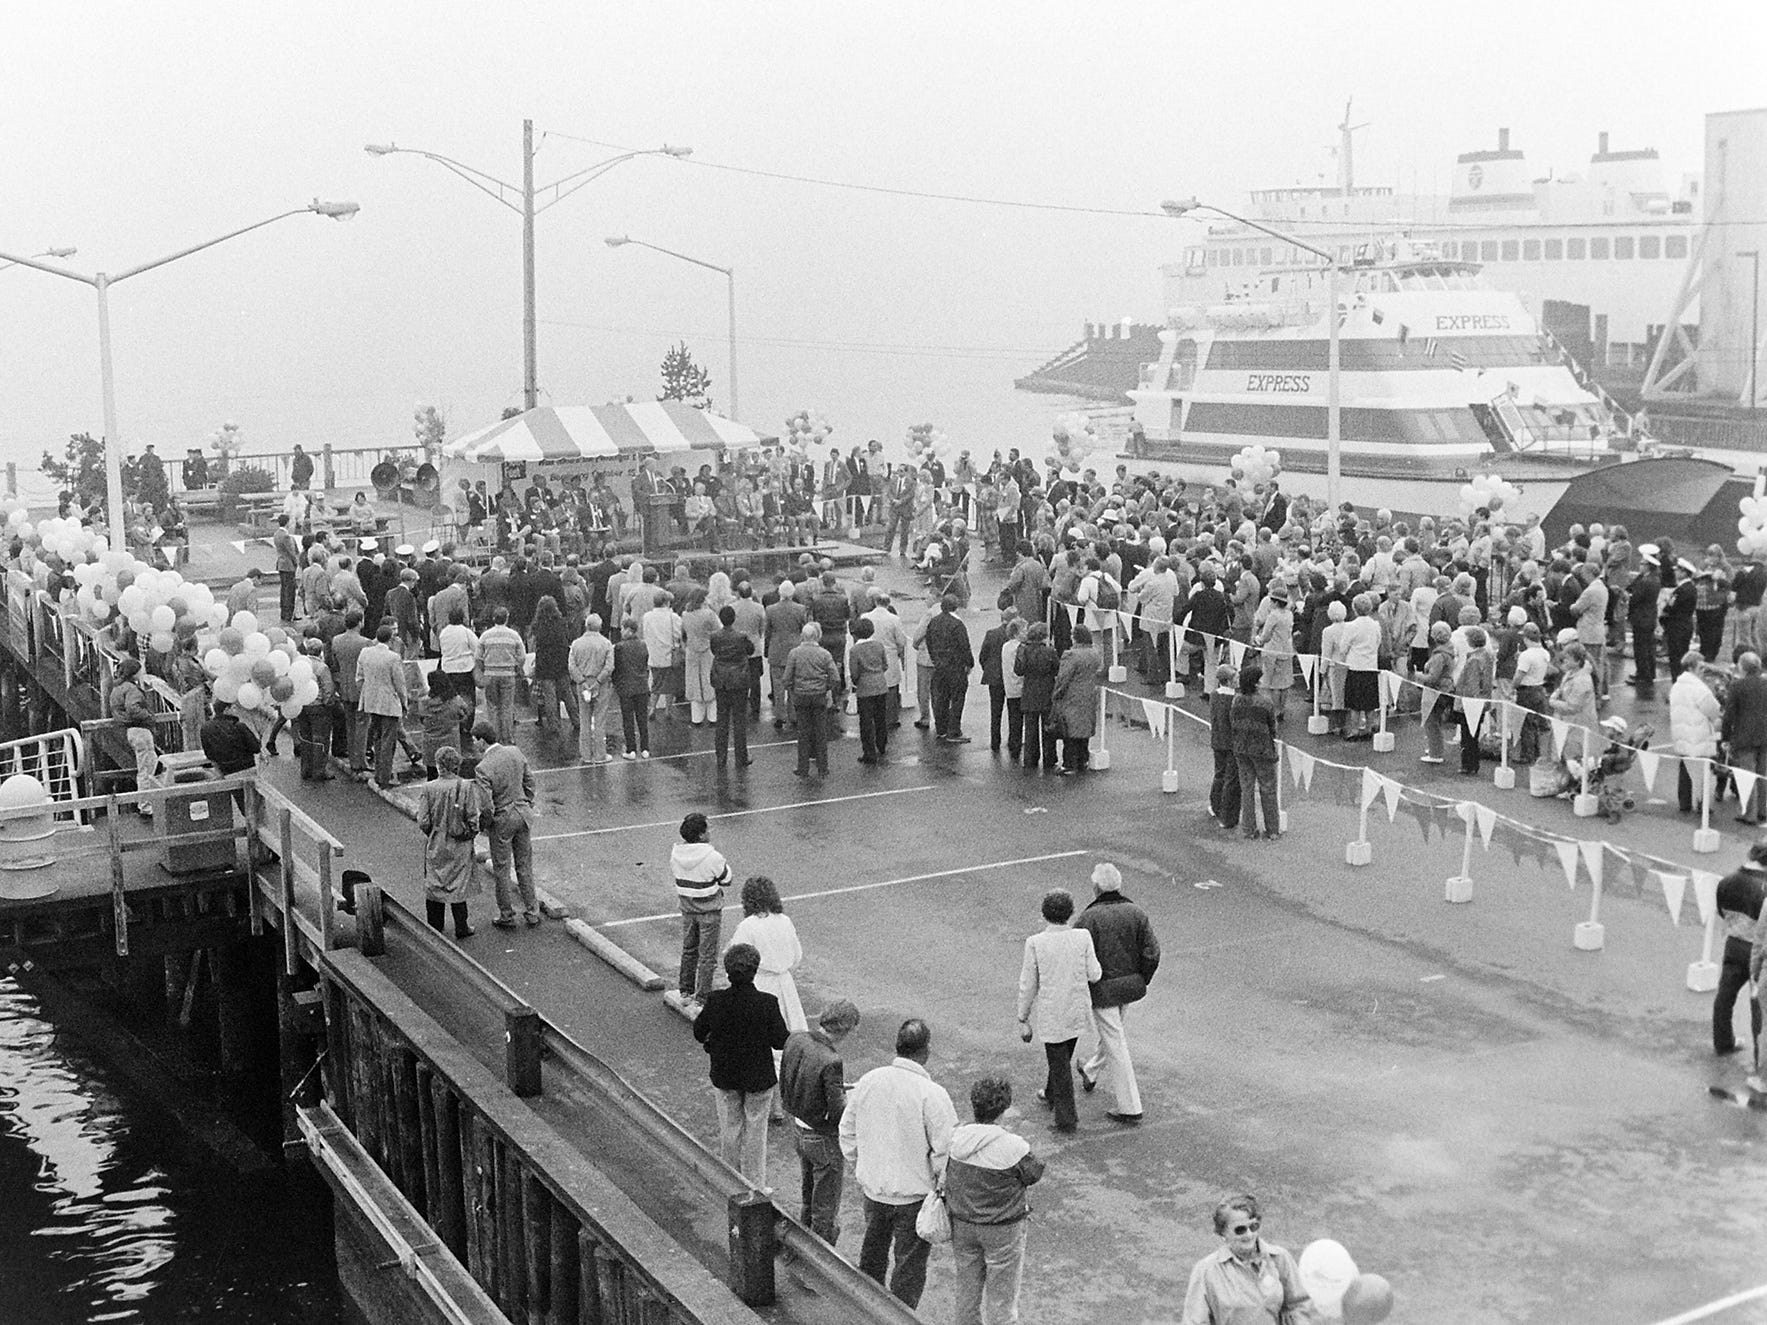 10/15/86